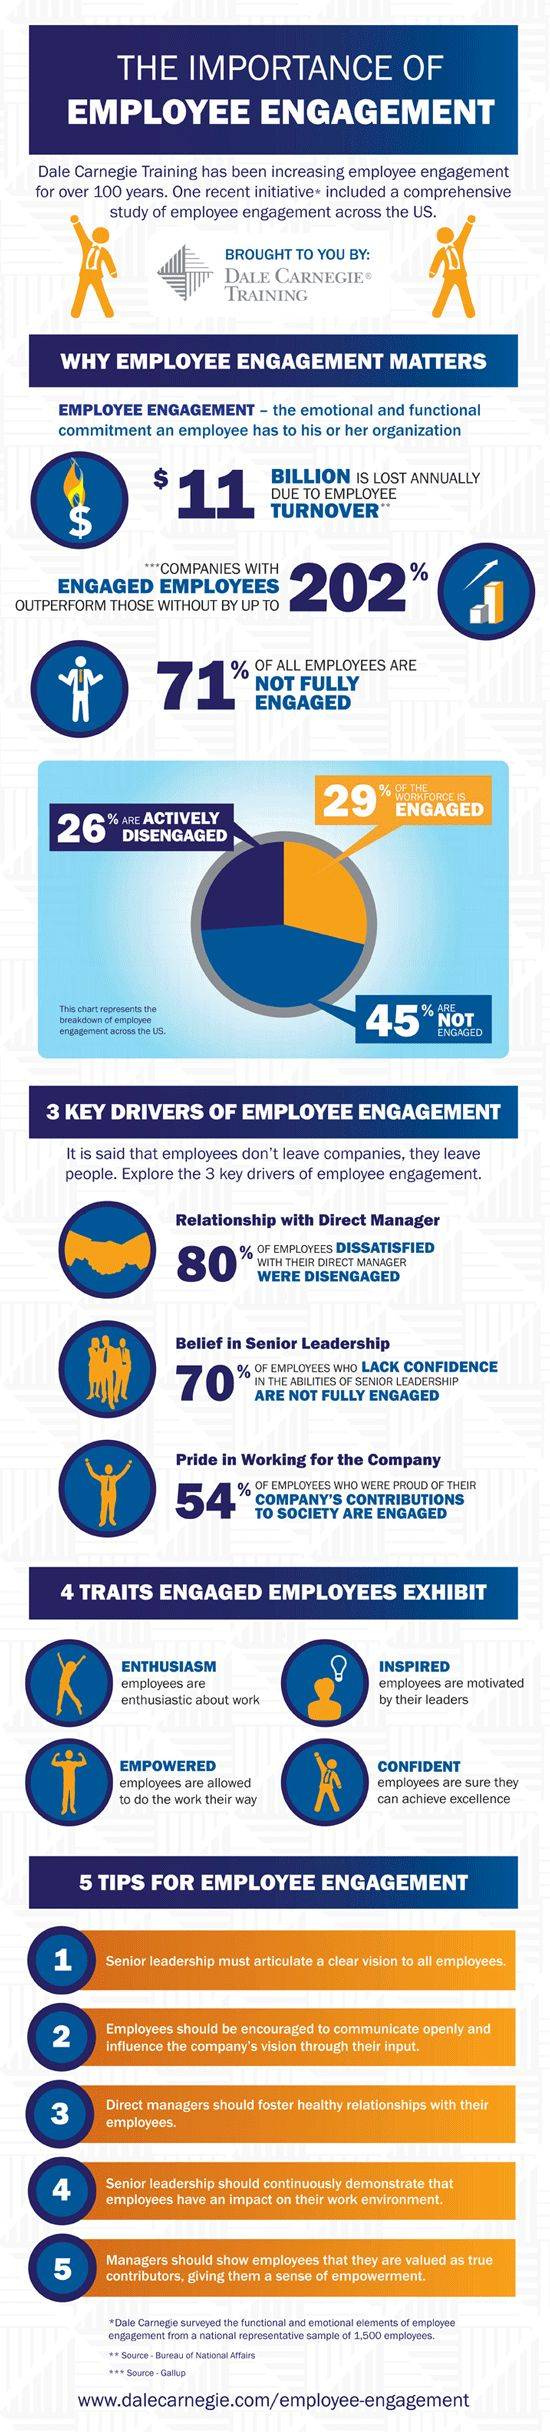 The Importance of Increasing Employee Engagement Using Corporate Giving Programs - Double the Donation